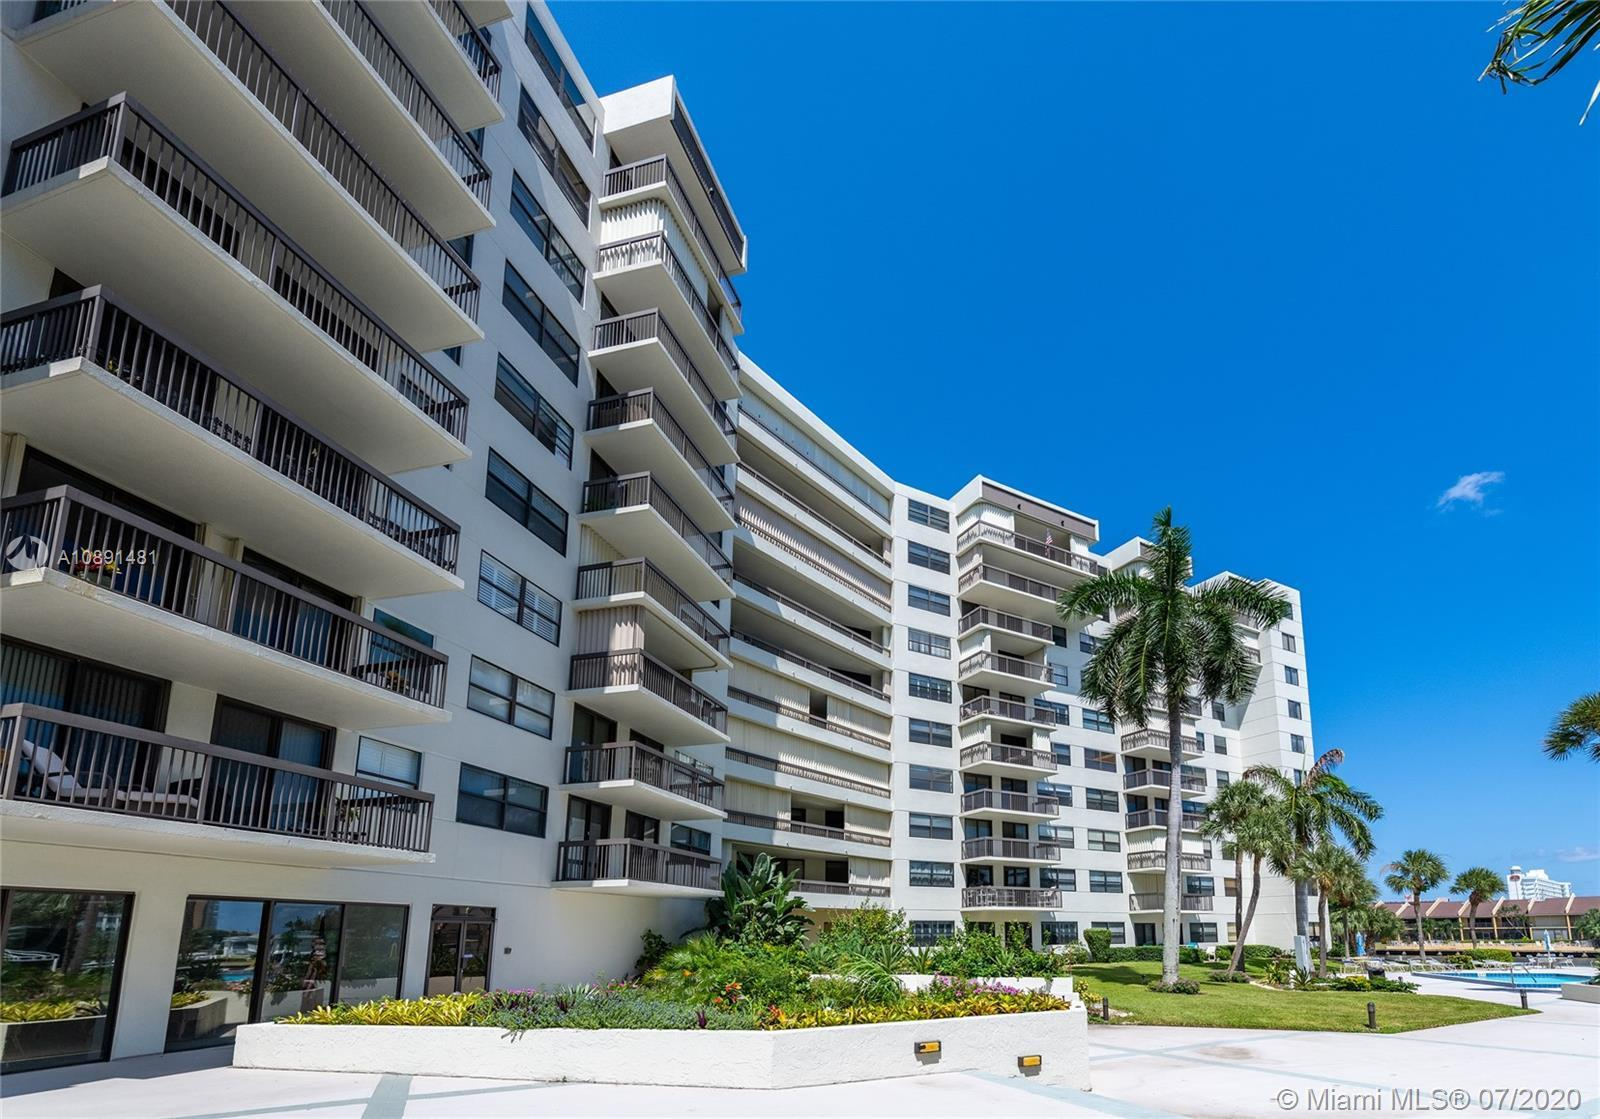 PRICED TO SELL! OCEAN AND INTRACOASTAL VIEWS! THIS LARGE UNIT (APPROX 1300 SQF) HAS A LOVELY SPLIT F